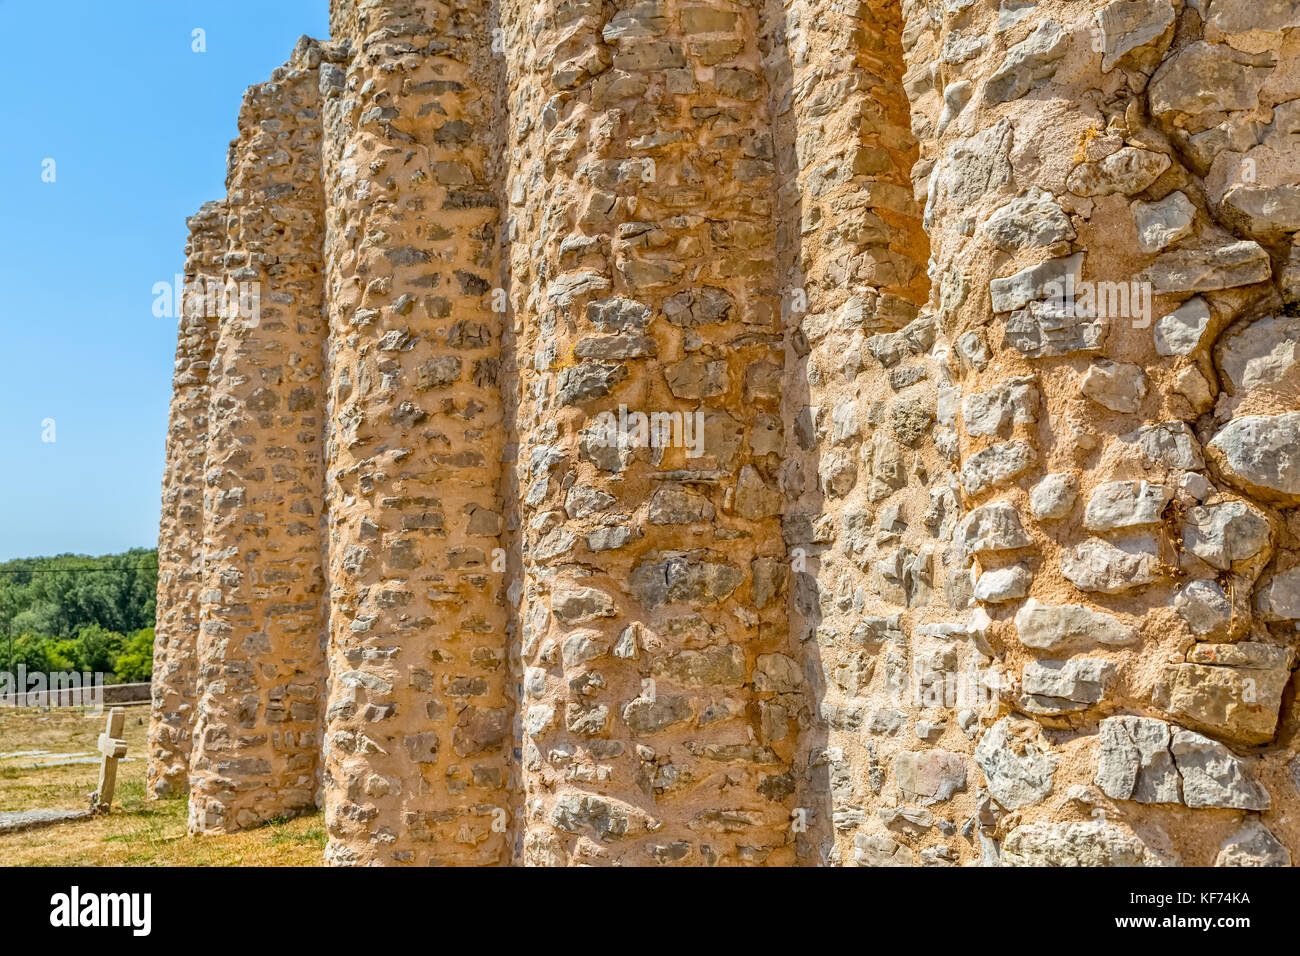 Pre-romanesque church rounded wall - Stock Image